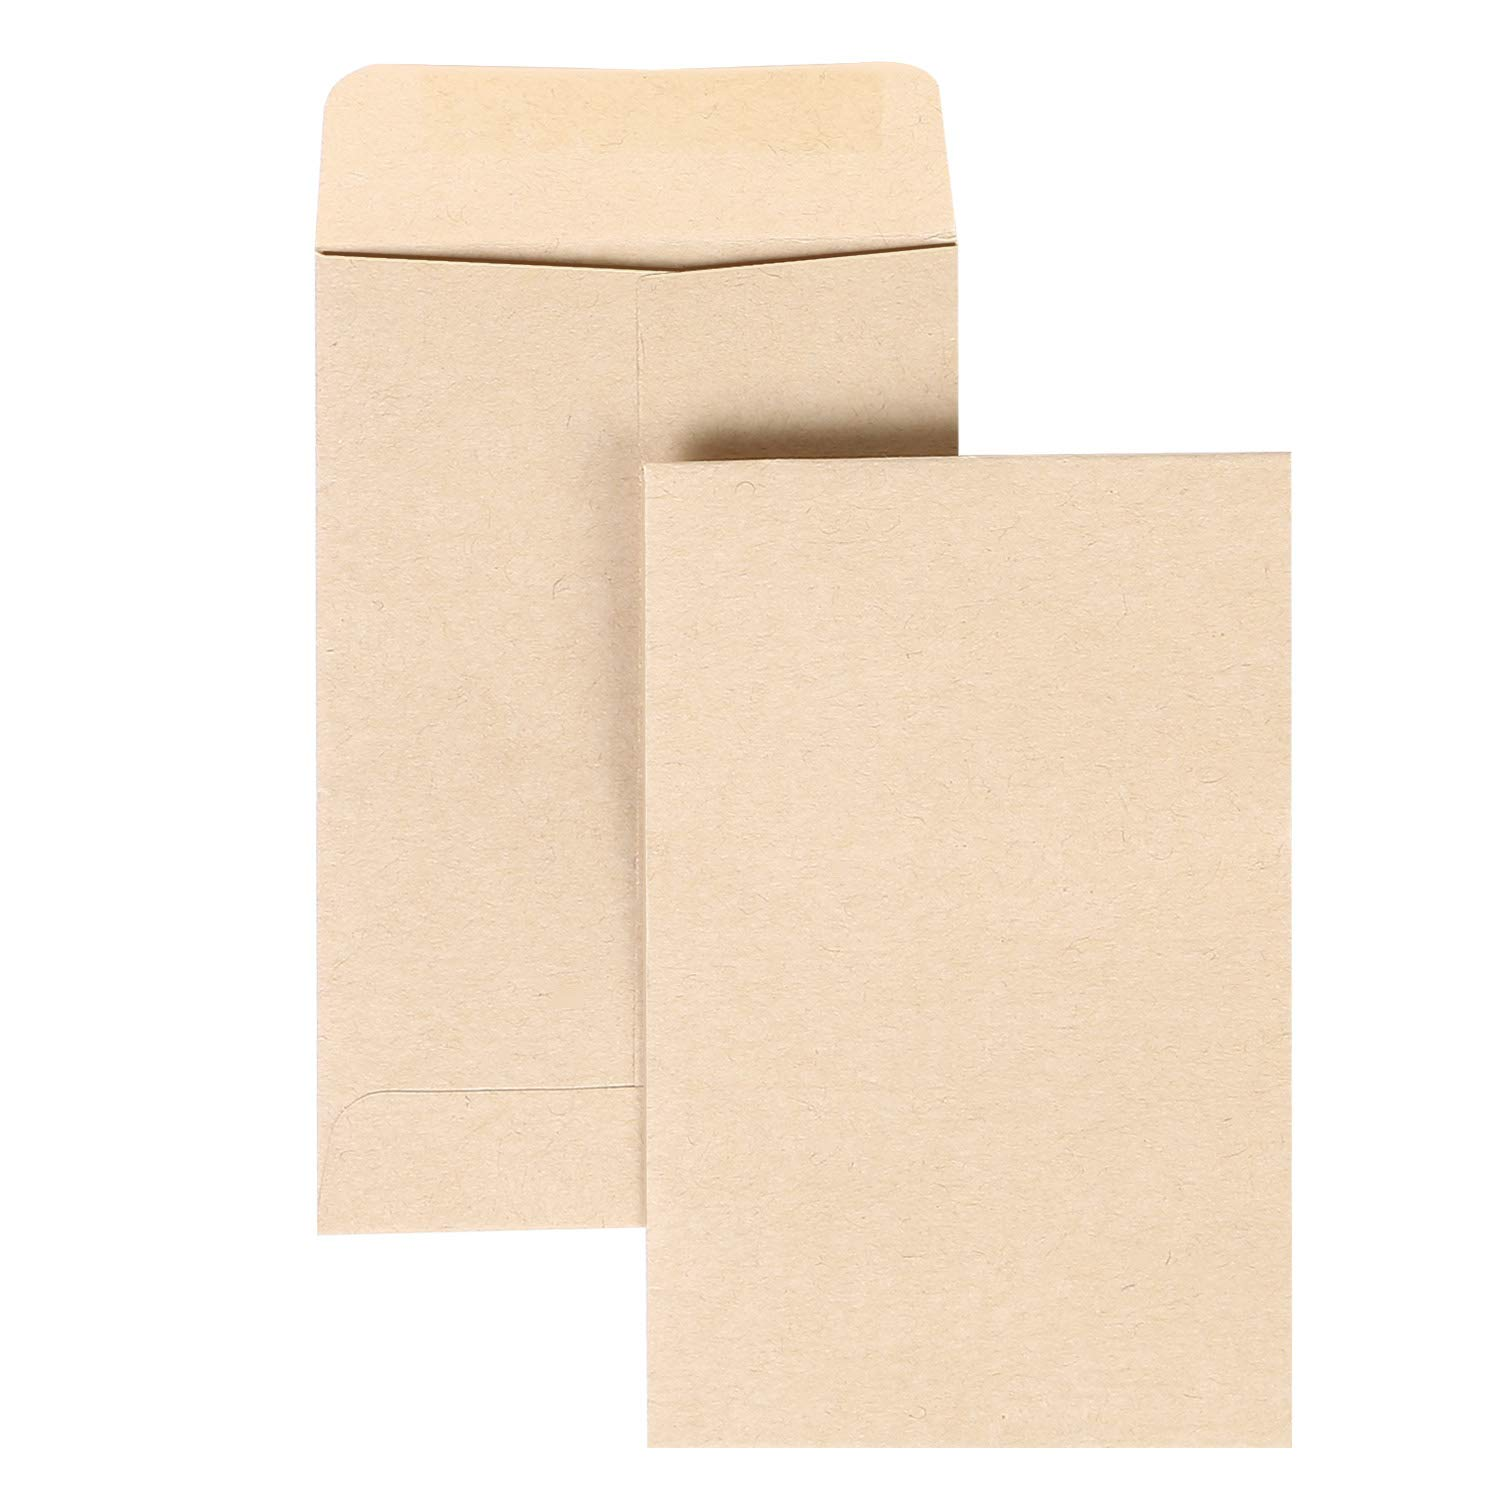 Road 500pcs Brown Kraft Mini Coin Envelopes (2.25 x 3.5 inch) for Wedding, Birthday Party Gift Supplies